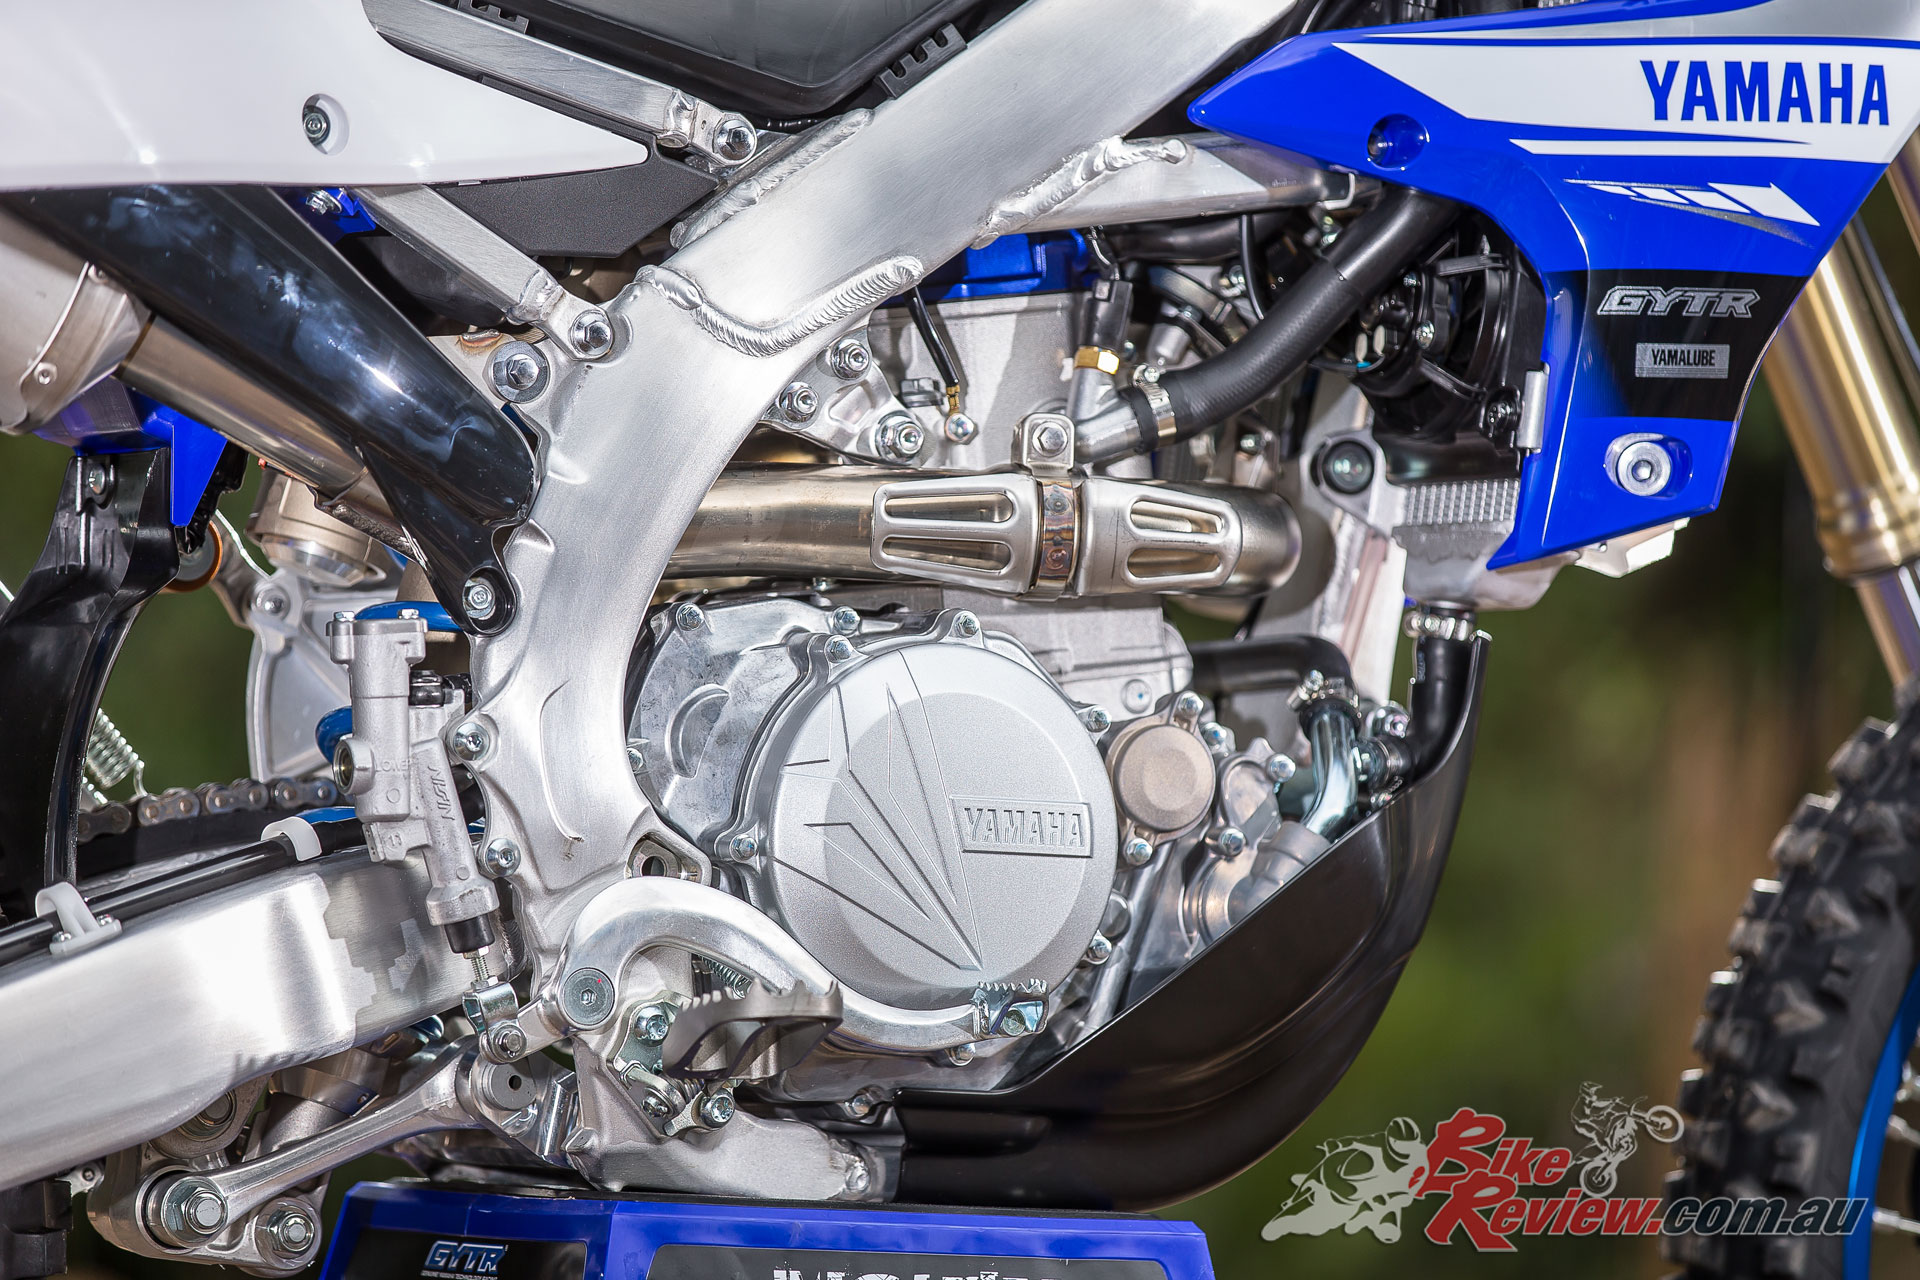 2019 Yamaha WR450F - YZF inspired powerplant